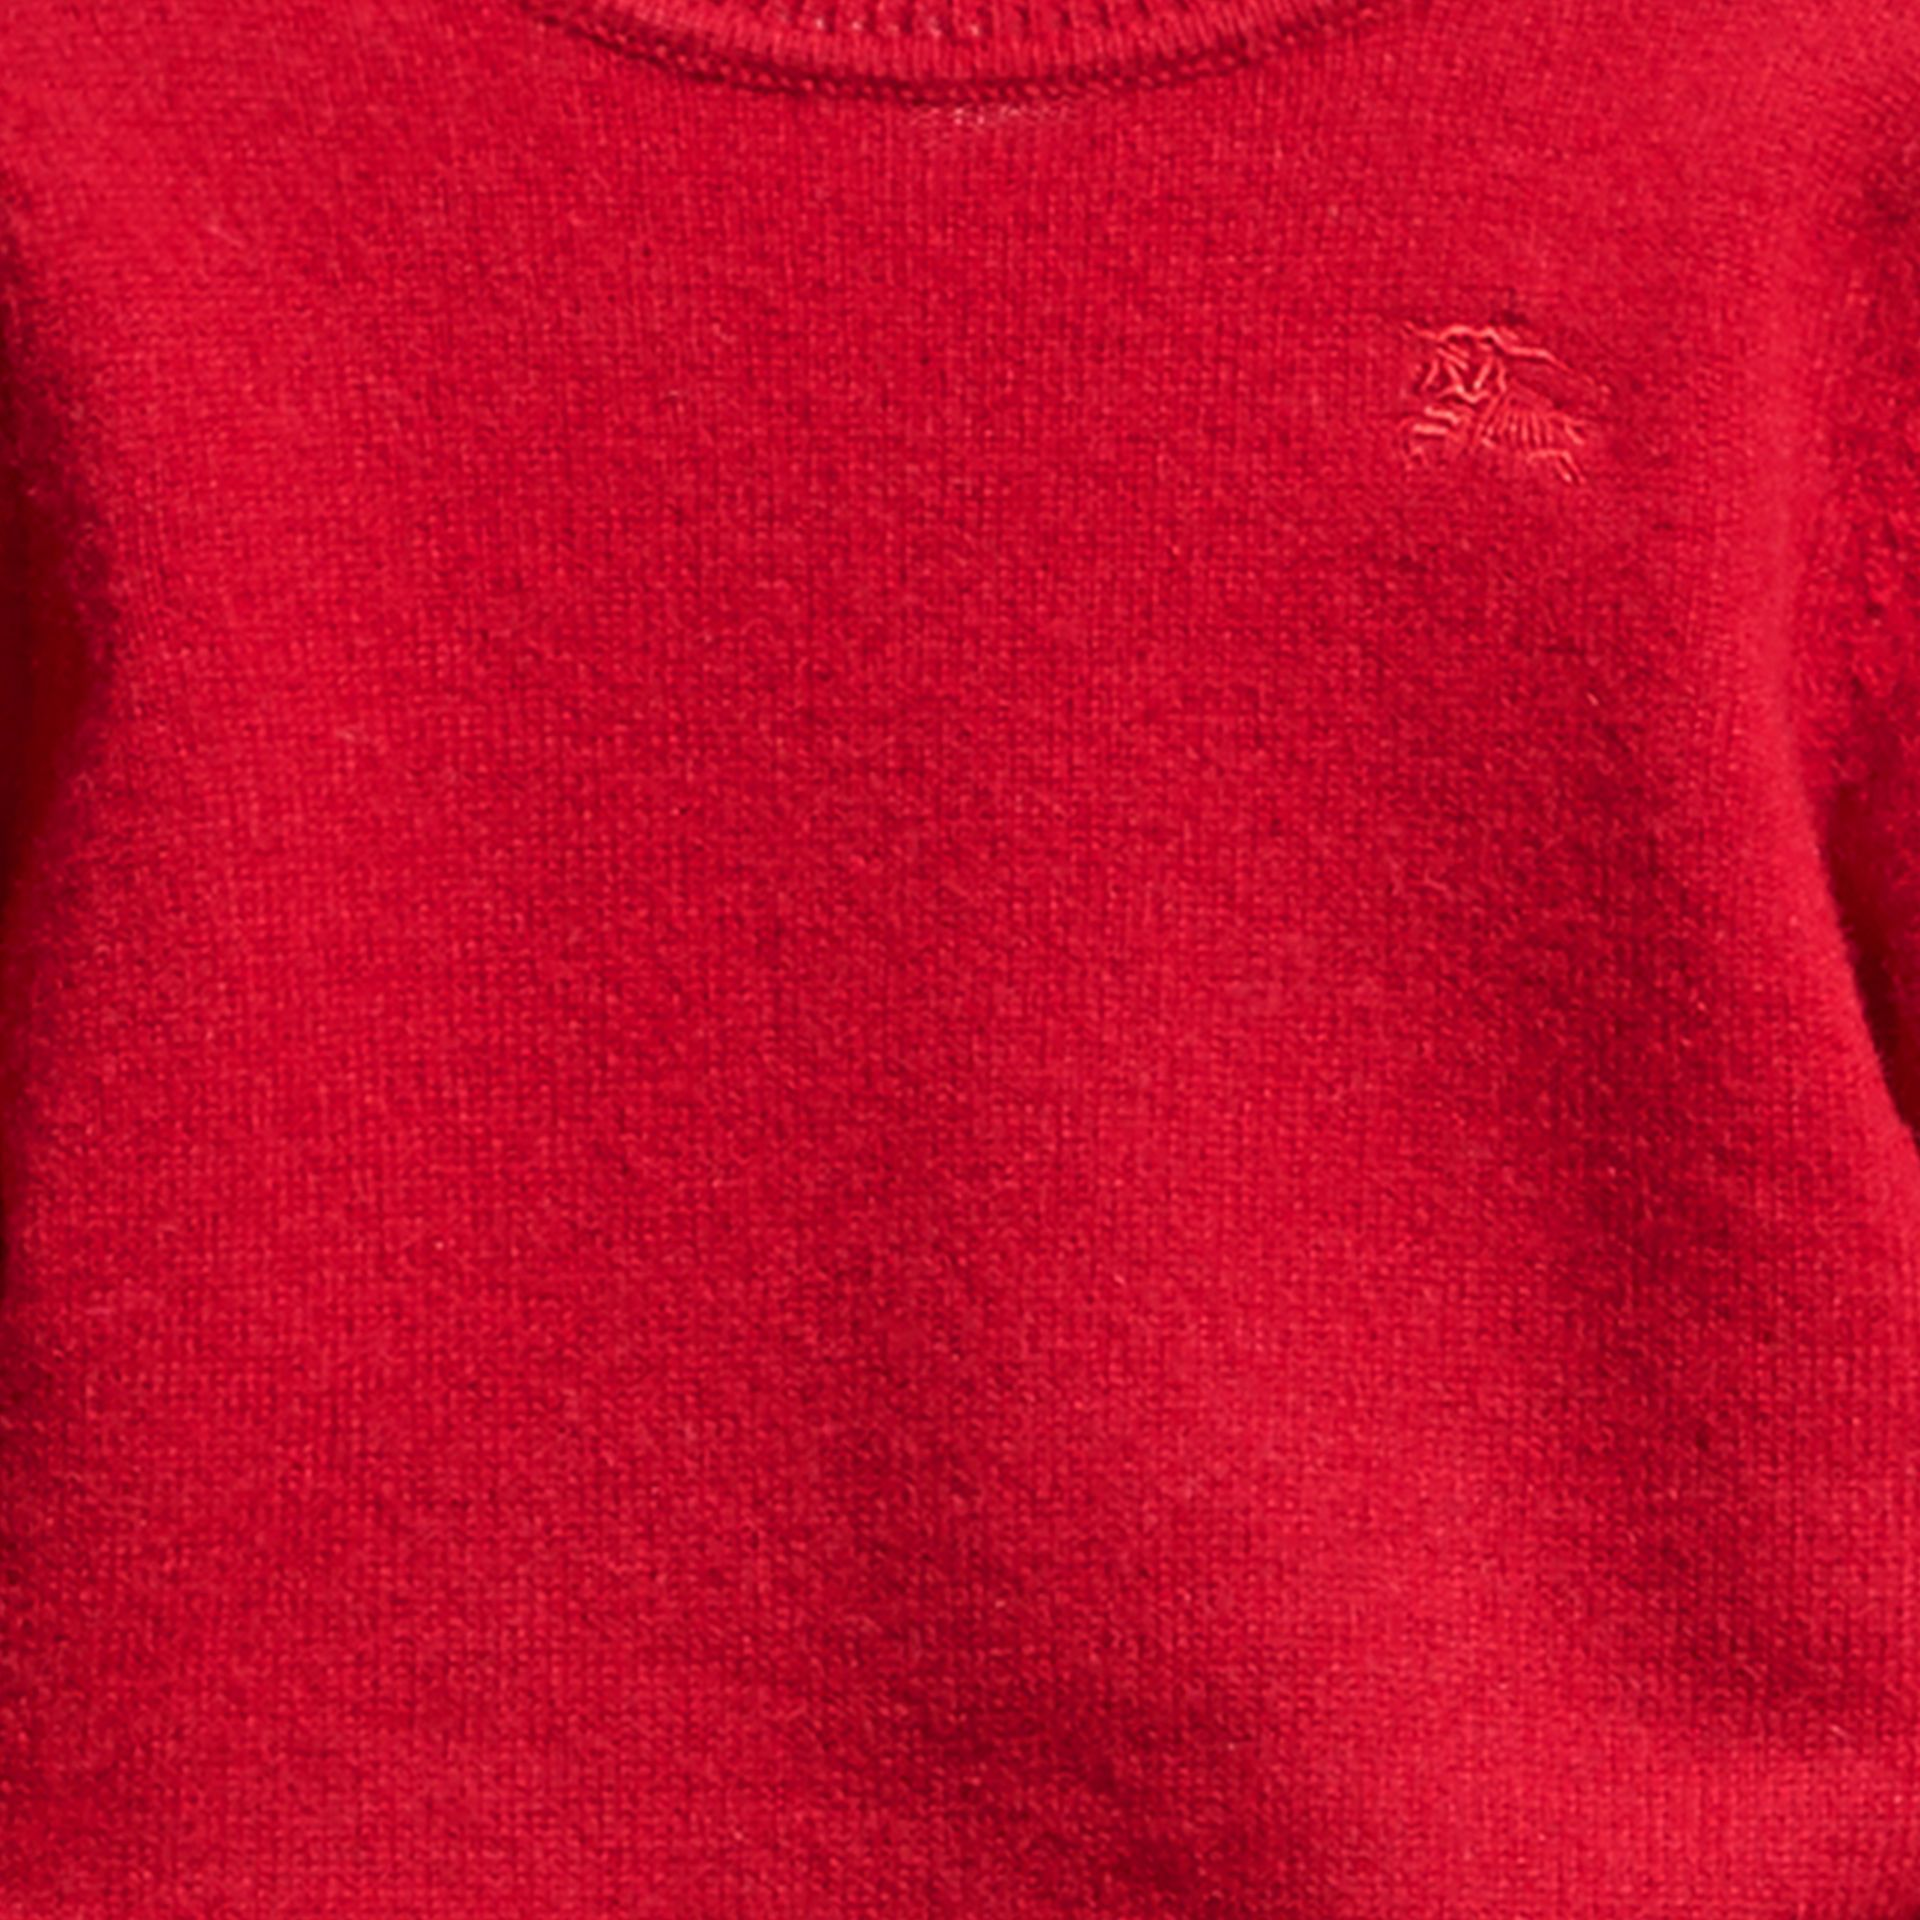 Parade red Check Detail Cashmere Sweater Parade Red - gallery image 2